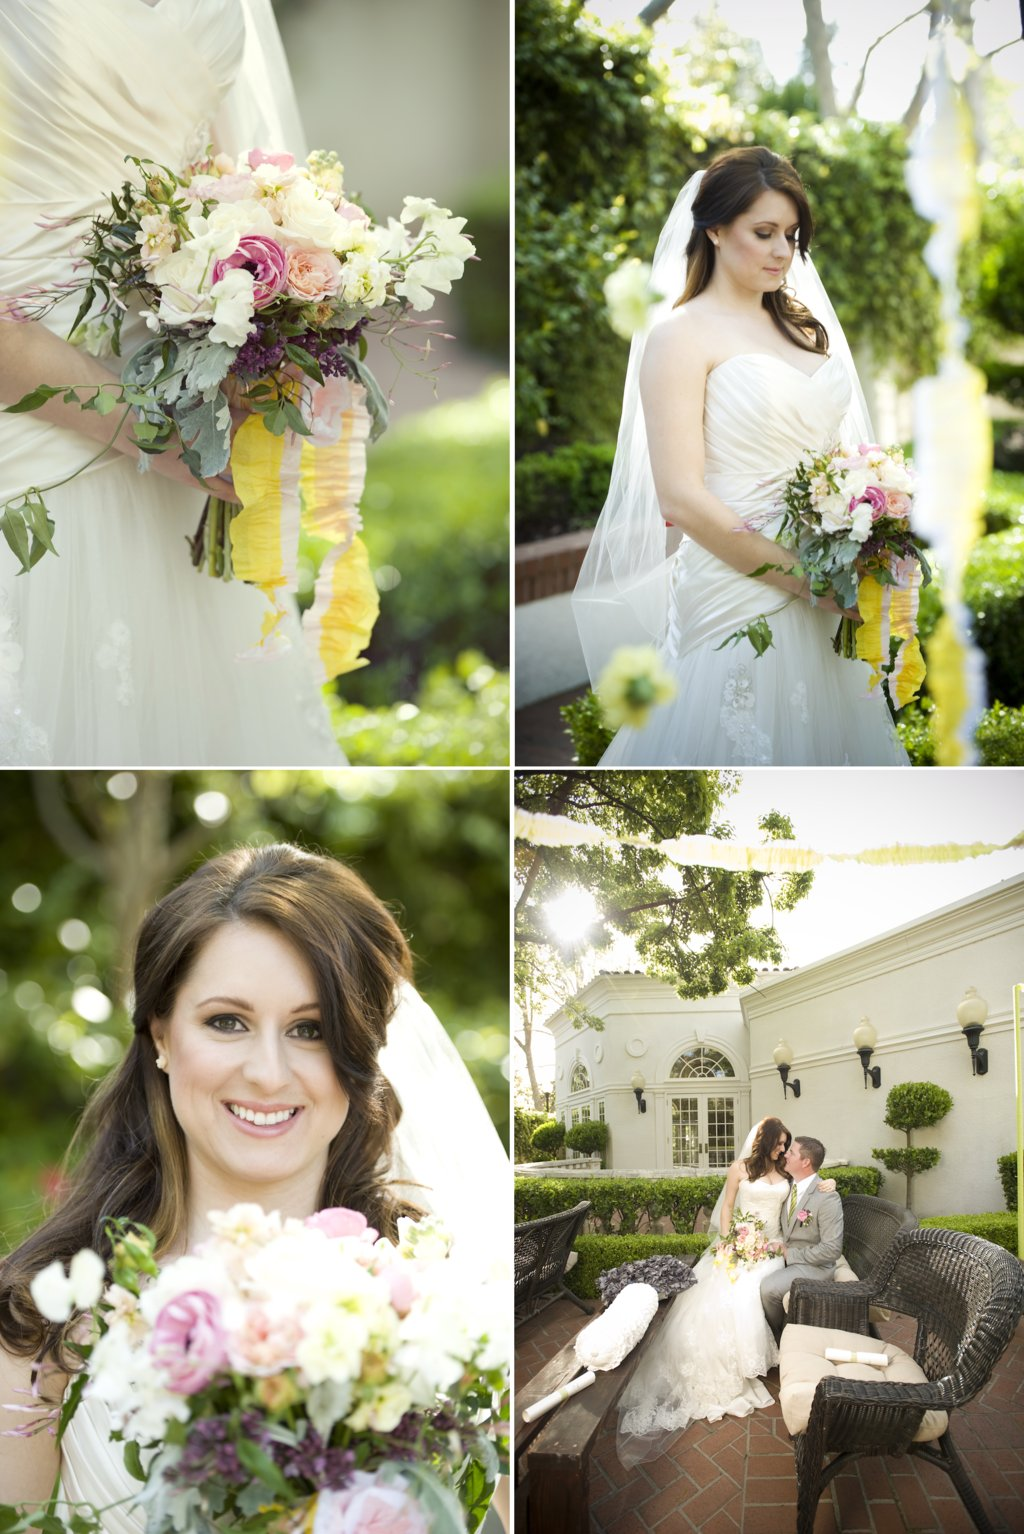 whimsical garden wedding romantic bridal bouquet outdoor wedding details